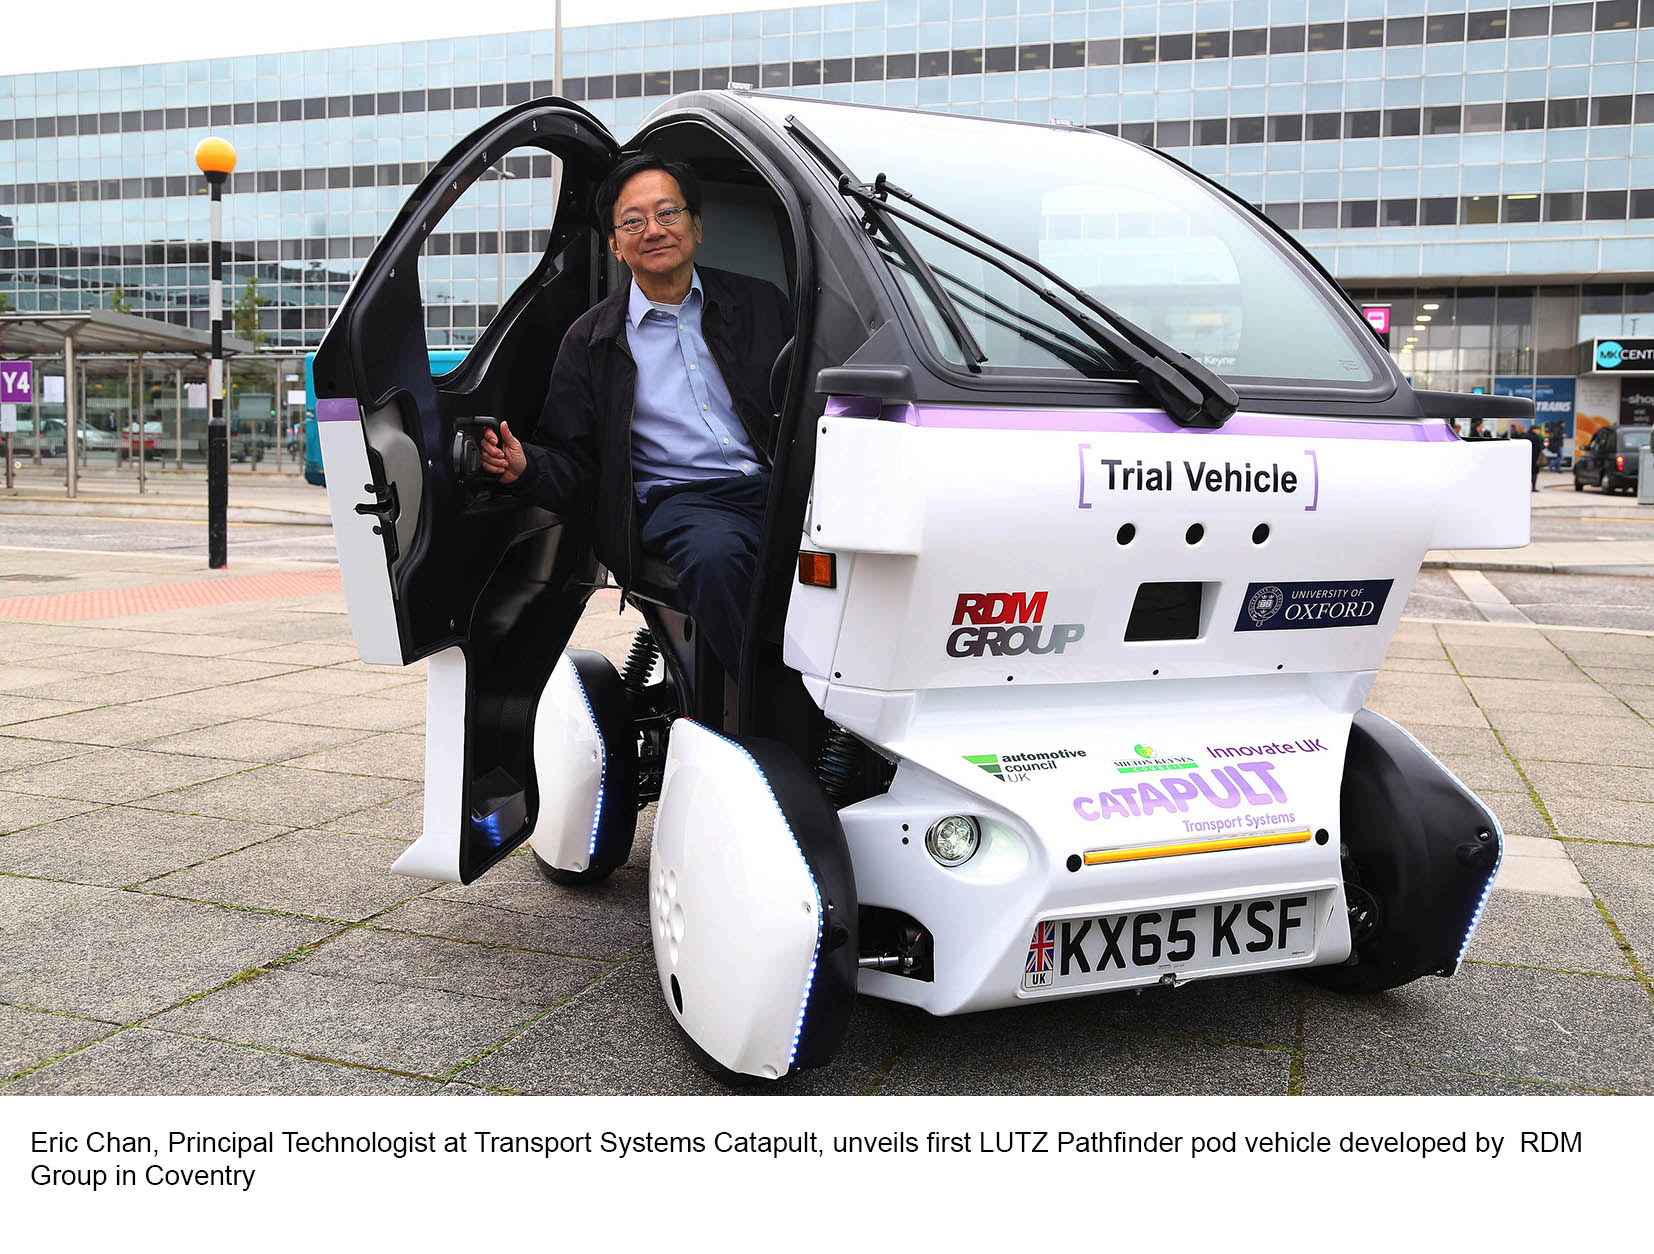 EDITORIAL USE ONLY Eric Chan, Principal Technologist Transport Systems Catapult, unveils Catapult's first LUTZ Pathfinder pod vehicle to commuters outside Milton Keynes Central train station, as part of a project trialling self-driving technology in pedestrianised areas. PRESS ASSOCIATION Photo. Picture date: Tuesday September 15, 2015. Following the presentation, the pod will be delivered to Oxford University's Mobile Robotics Group to begin the installation of the vehicle's autonomous control system before undergoing a series of calibration tests to become the first fully automated vehicles on public pedestrianised areas in the UK. Photo credit should read: Geoff Caddick/PA Wire